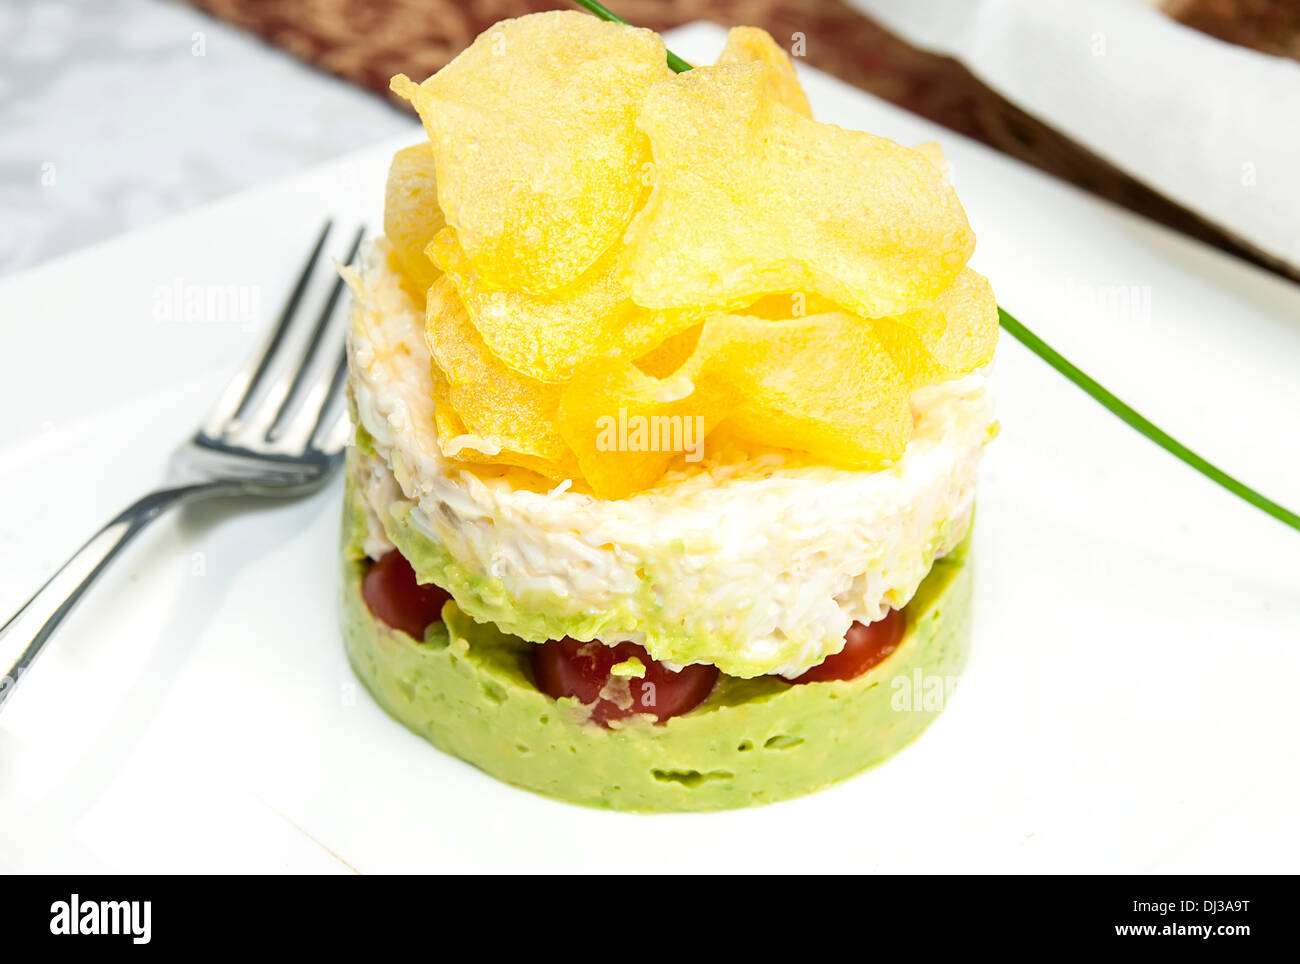 salad with vegetables and mashed potatoes with cheese Stock Photo